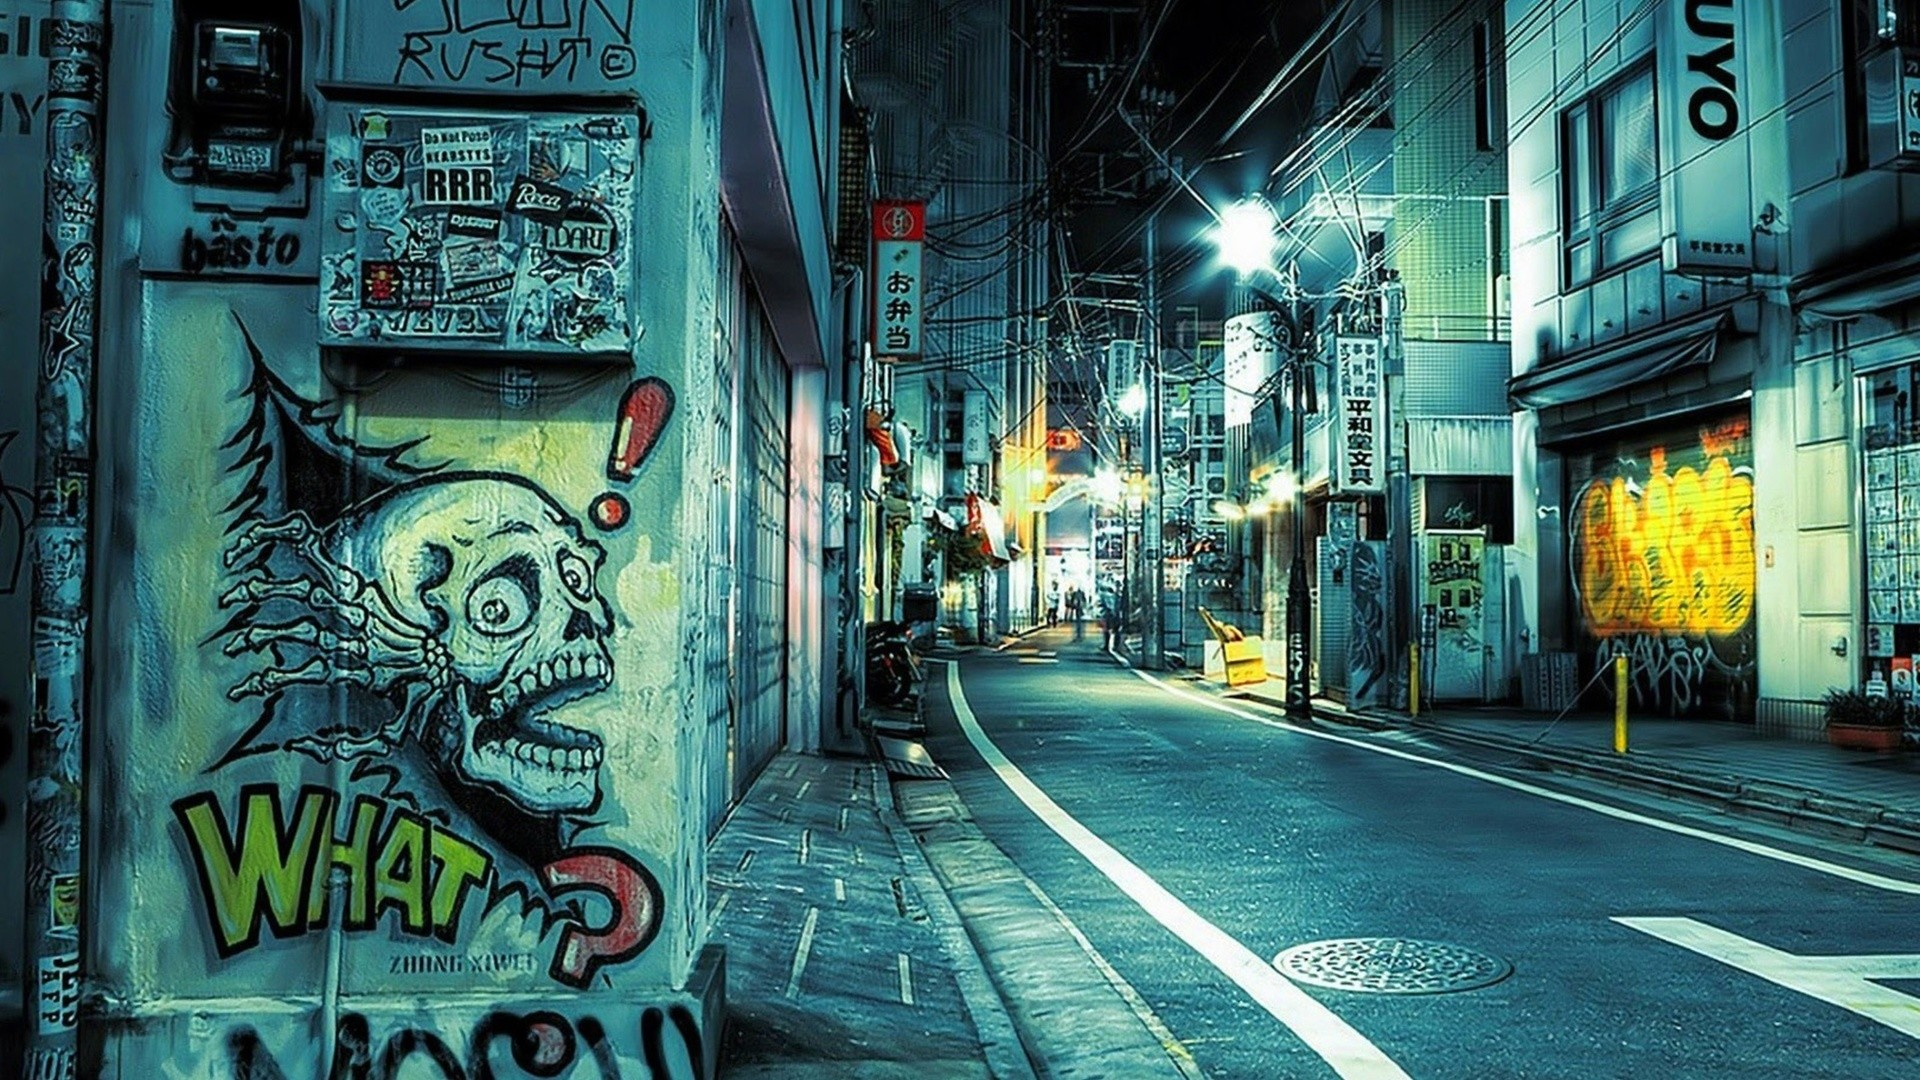 Street Art, Graffiti, Night City, Street, Hip Hop, Rap Culture,